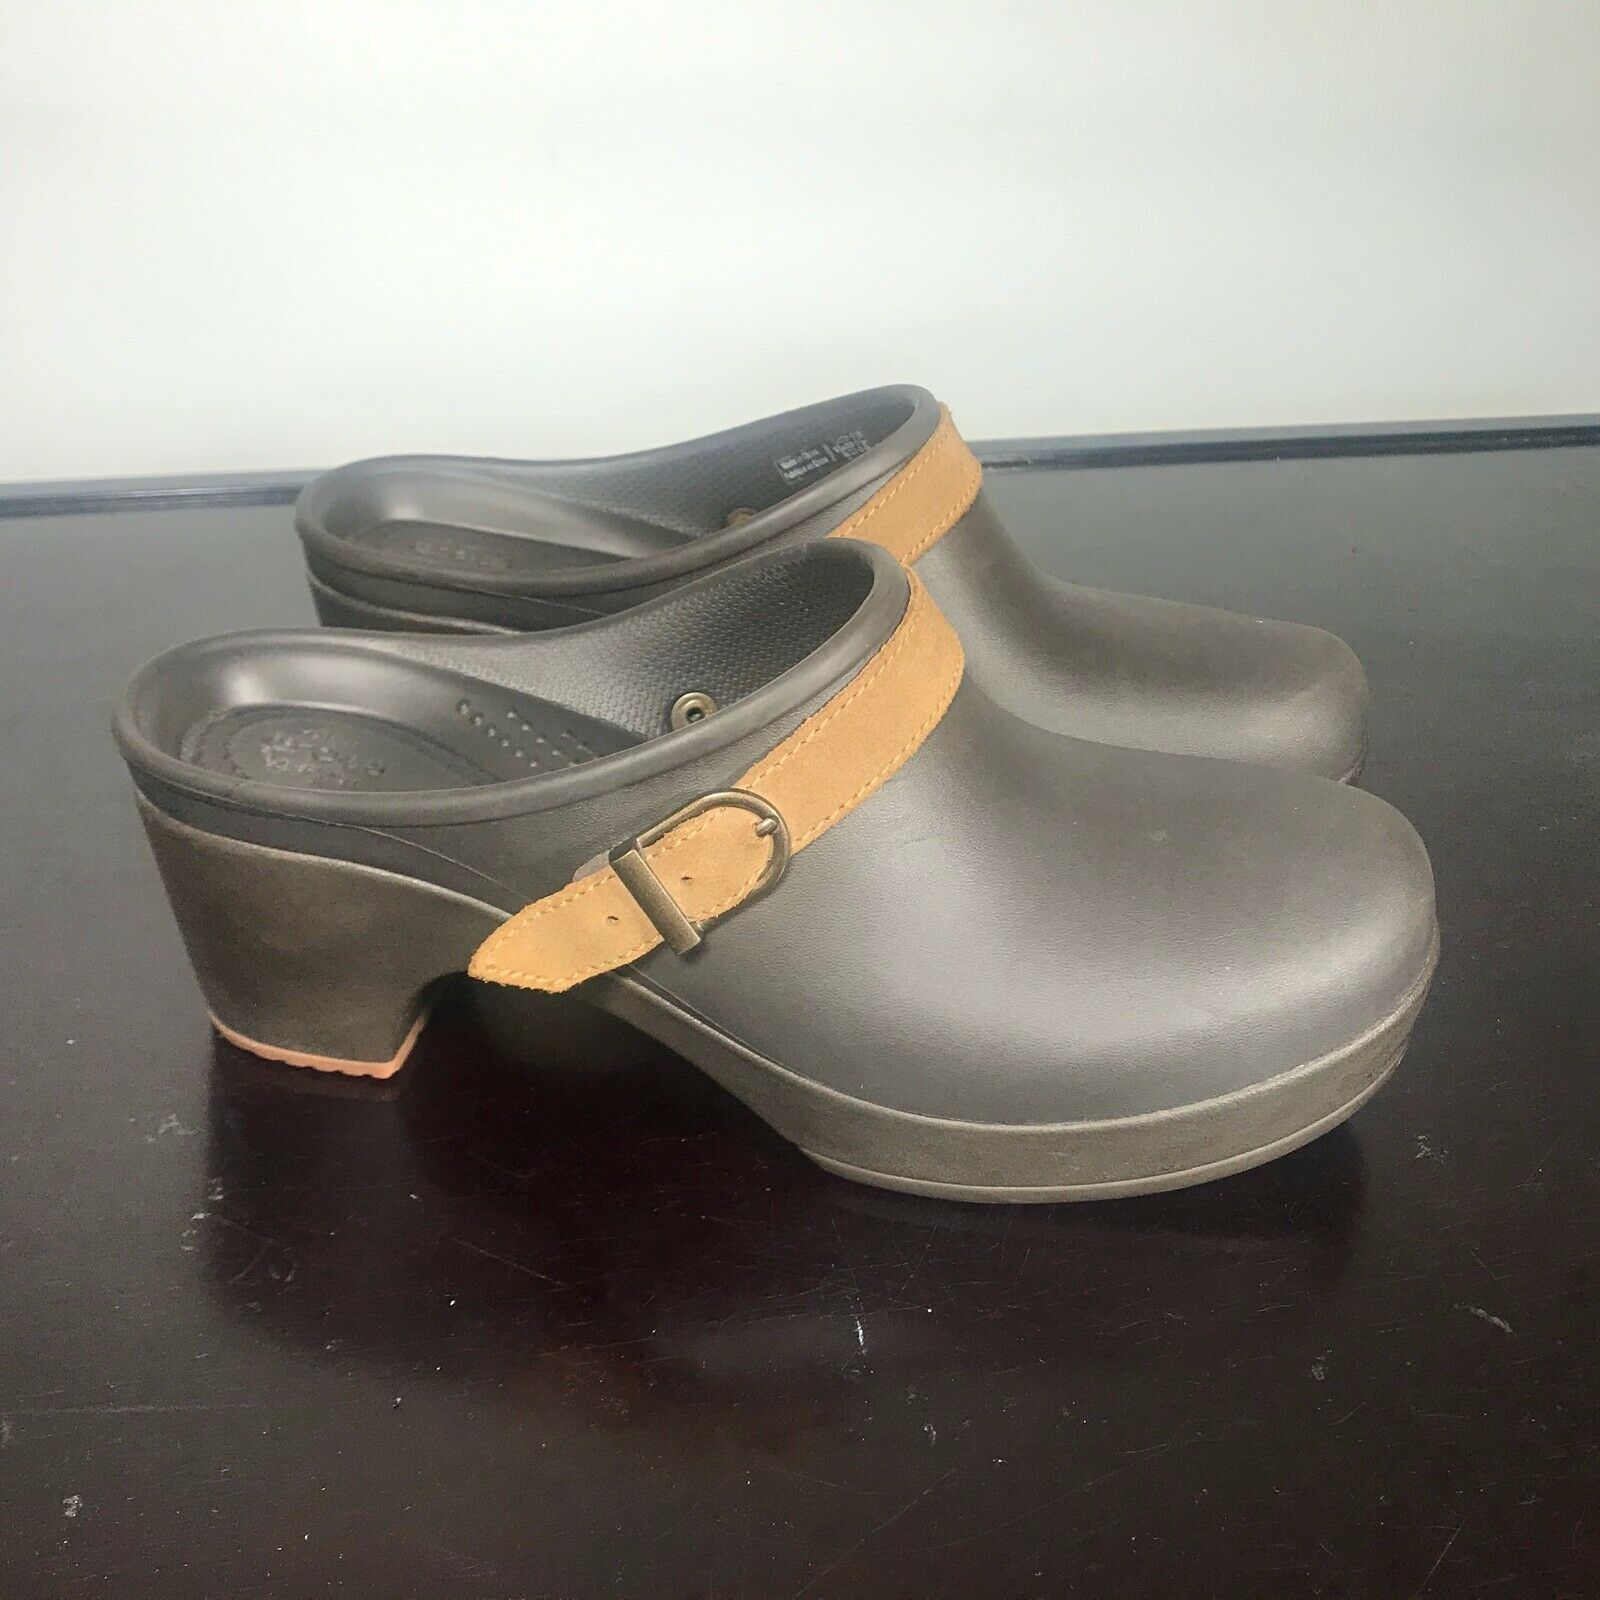 Primary image for Crocs Sarah Buckle Brown High Heel Mules Clogs Women's Size 8. Nice!